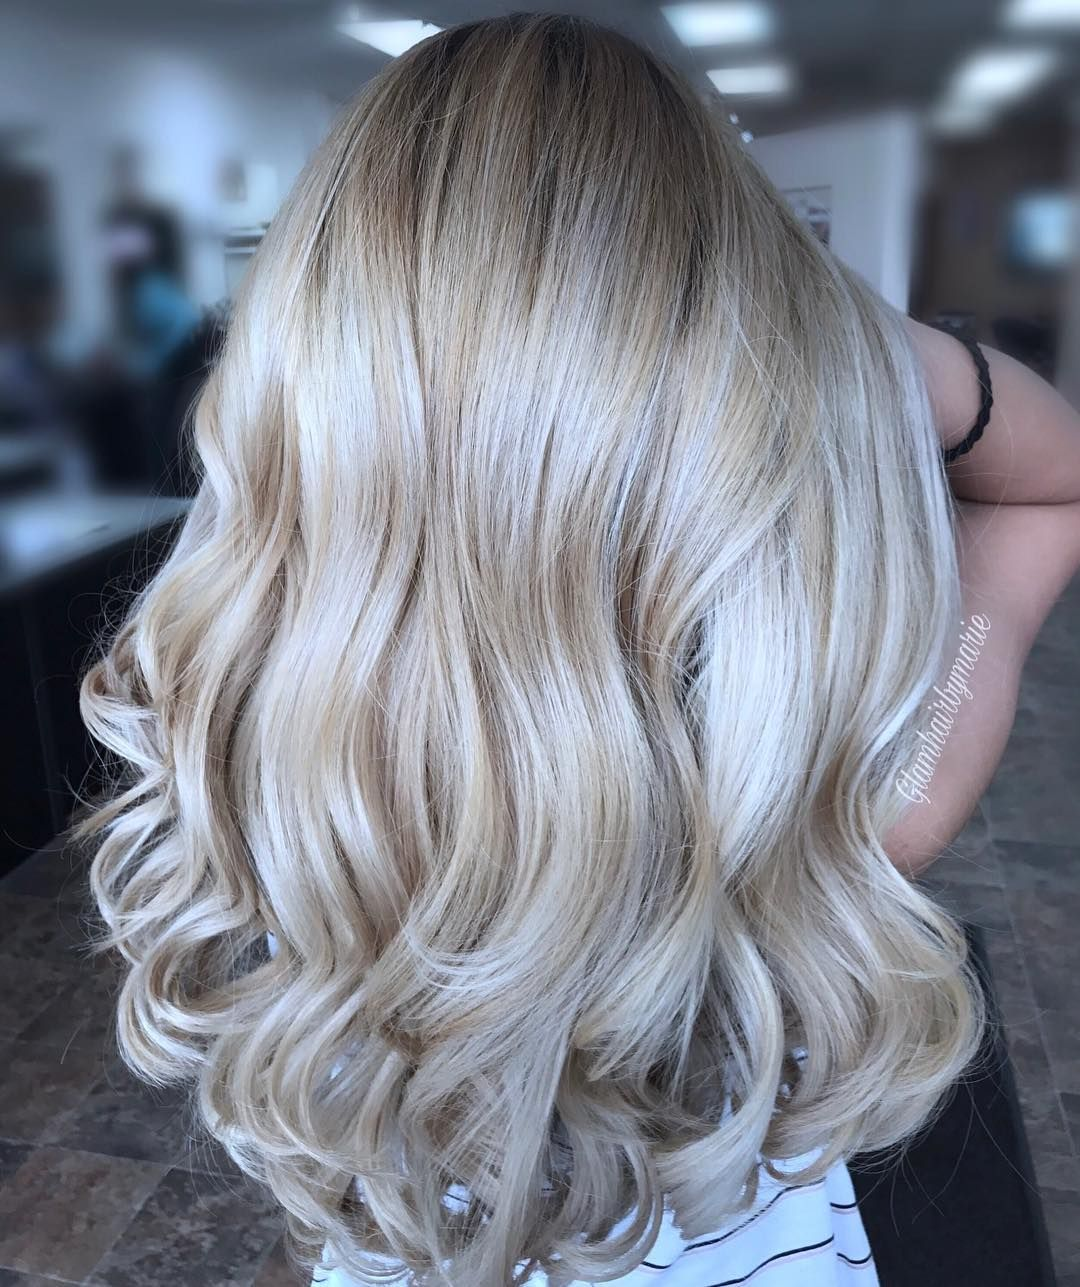 Such A Pretty Mix Of Platinum And Buttery Blonde Blonde Blondehighlights Platinumblonde Champagne Blonde Hair Buttery Blonde Hair